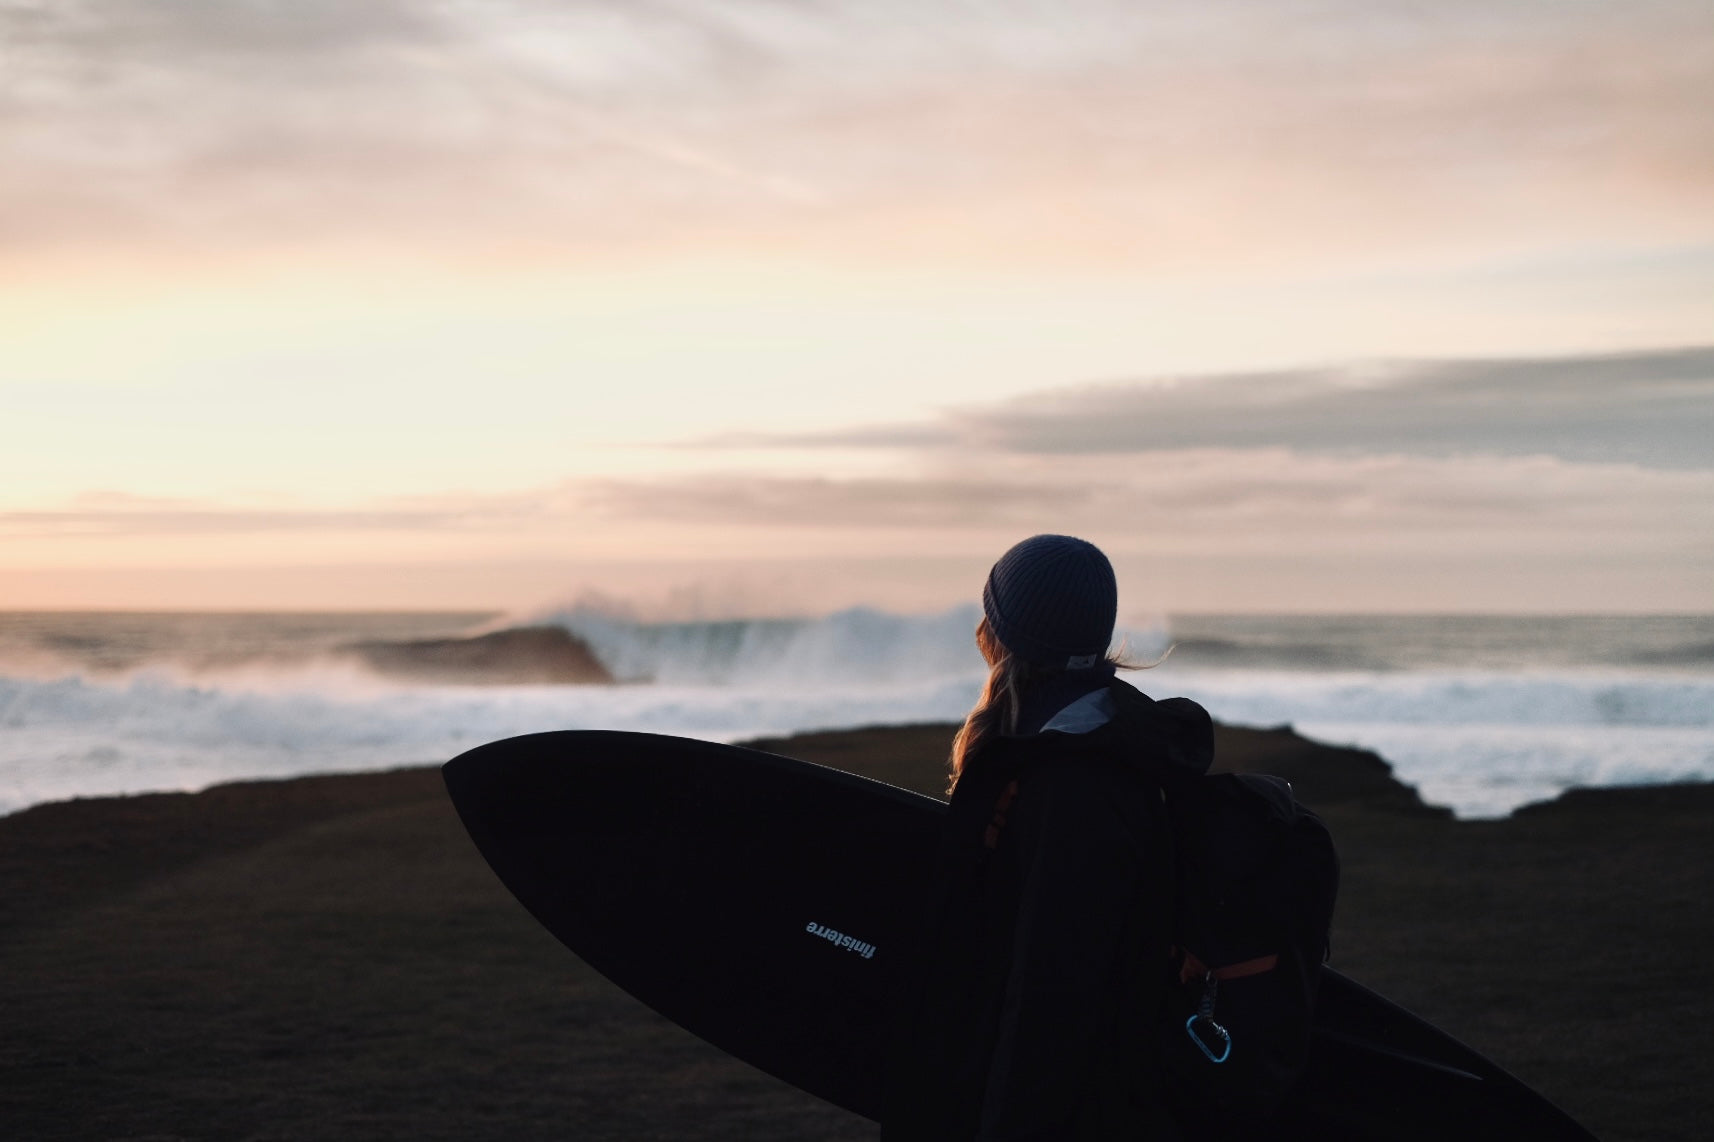 Eaaskey Britton looks out to sea with surfboard in hand - Oceanographic 18